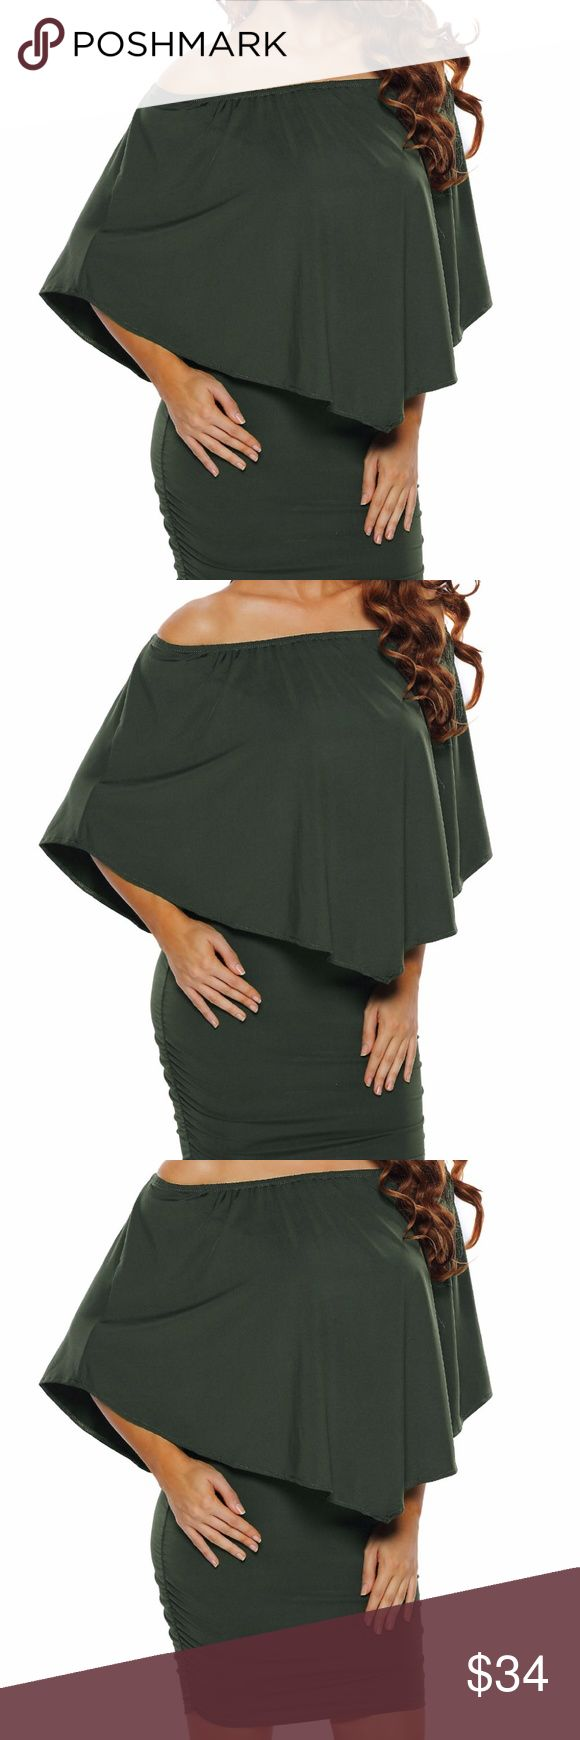 Multiple Layered Army Green Mini Dress This Multiple Layered Mini Dress can be worn at the office or for a night out at a bar right after! The cute ruffle-layer top gives an  elegant, cute feel to the comfortable and over sized dress. The short length accentuates your curves with body-hugging silhouette, you are  sure to feel confident, sexy and elegant no matter the occasion.  22820-9 Dresses Mini